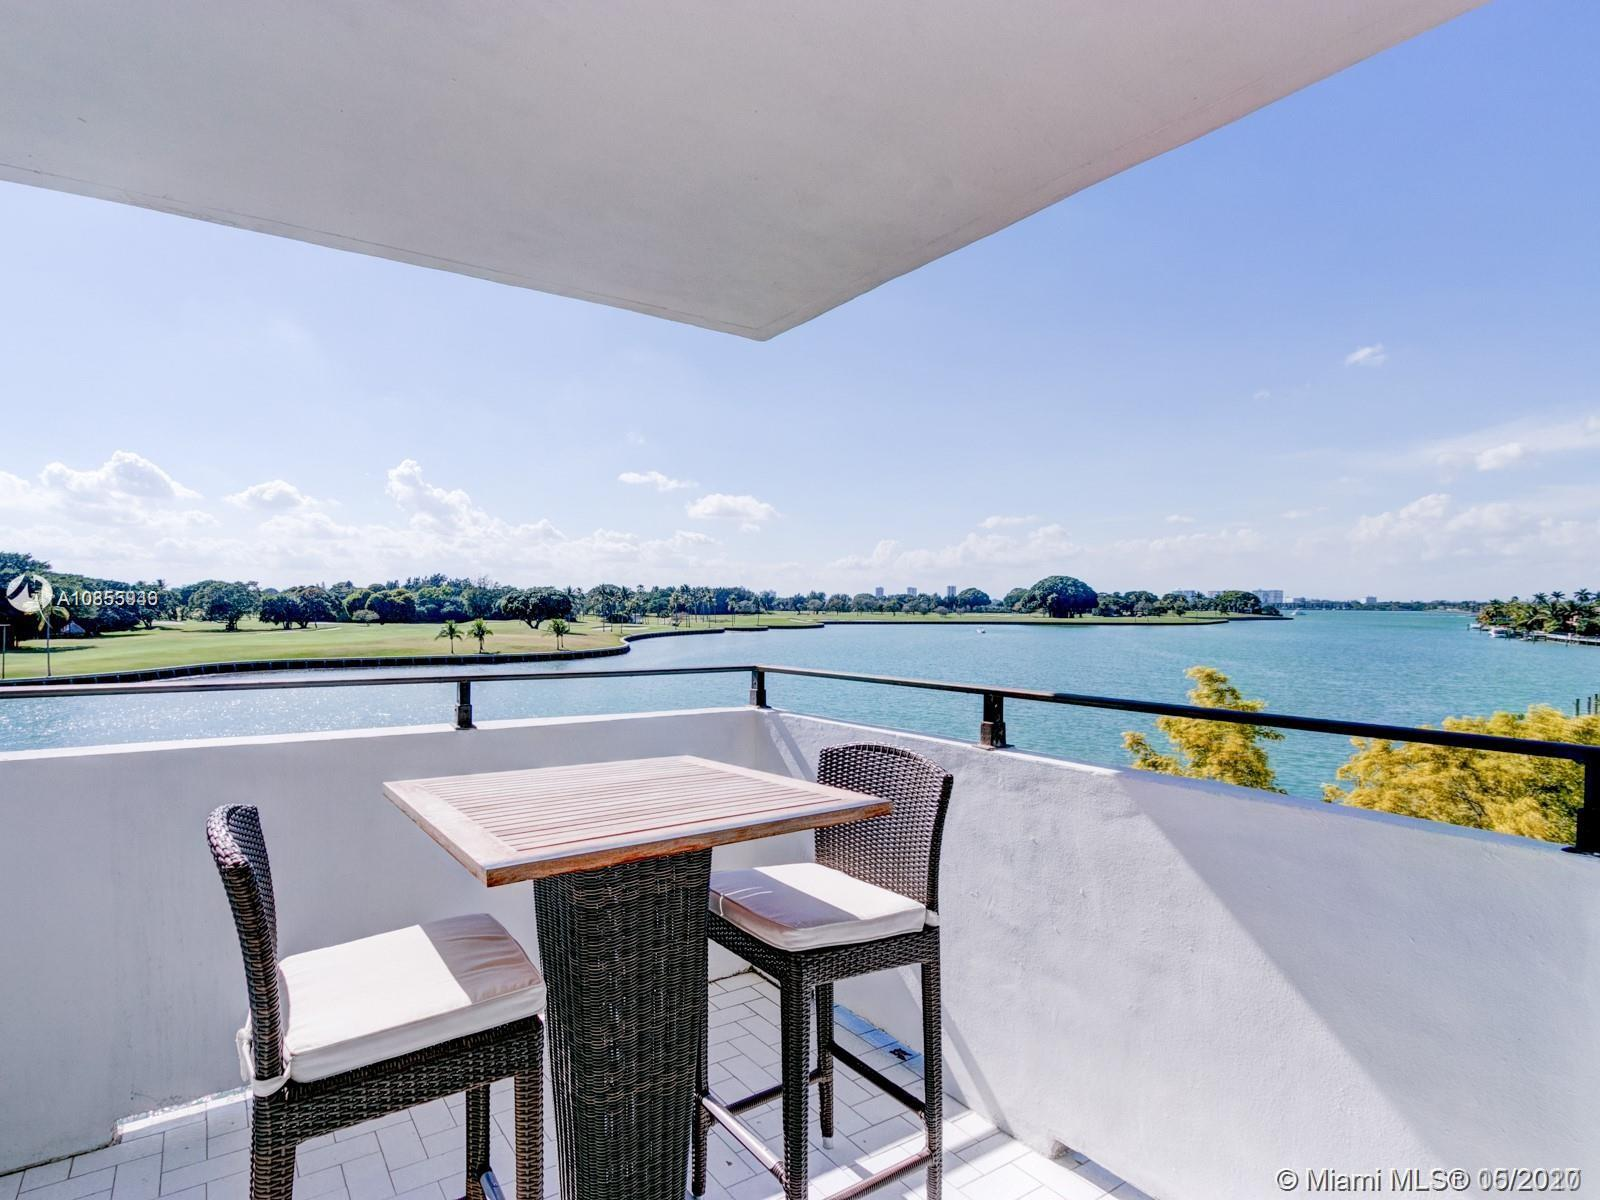 UNOBSTRUCTED WATER VIEWS !!!  BEAUTIFUL  1500 SQF, 2/2 WATER VIEWS FROM EVERY ROOM IN THIS SPACIOUS CORNER UNIT ON THE SOUTHERN TIP OF BAY HARBOR ISLANDS! LOCATED IN WELL MAINTAINED, BOUTIQUE BUILDING WITH ONLY 17 UNITS! UNIT FEATURES INCLUDE OPEN KITCHEN OFF LIVING ROOM, PRIVATE TERRACE, AND CUSTOM CLOSETS. UNIT HAS BEEN TOTALLY REMODELED AND IS READY FOR A NEW TOWNER  TO MOVE IN! YOU WILL LOVE TO SEAT ON YOUR TERRACE AND ENJOY THE BEAUTIFUL SUNSETS OVERLOOKING THE SERENE WATER ON THE INDIAN CREEK GOLF COURSE .WALKING DISTANCE TO RUTH K BROAD BAY HARBOR K -8 SCHOOL. OWNER MOTIVATED